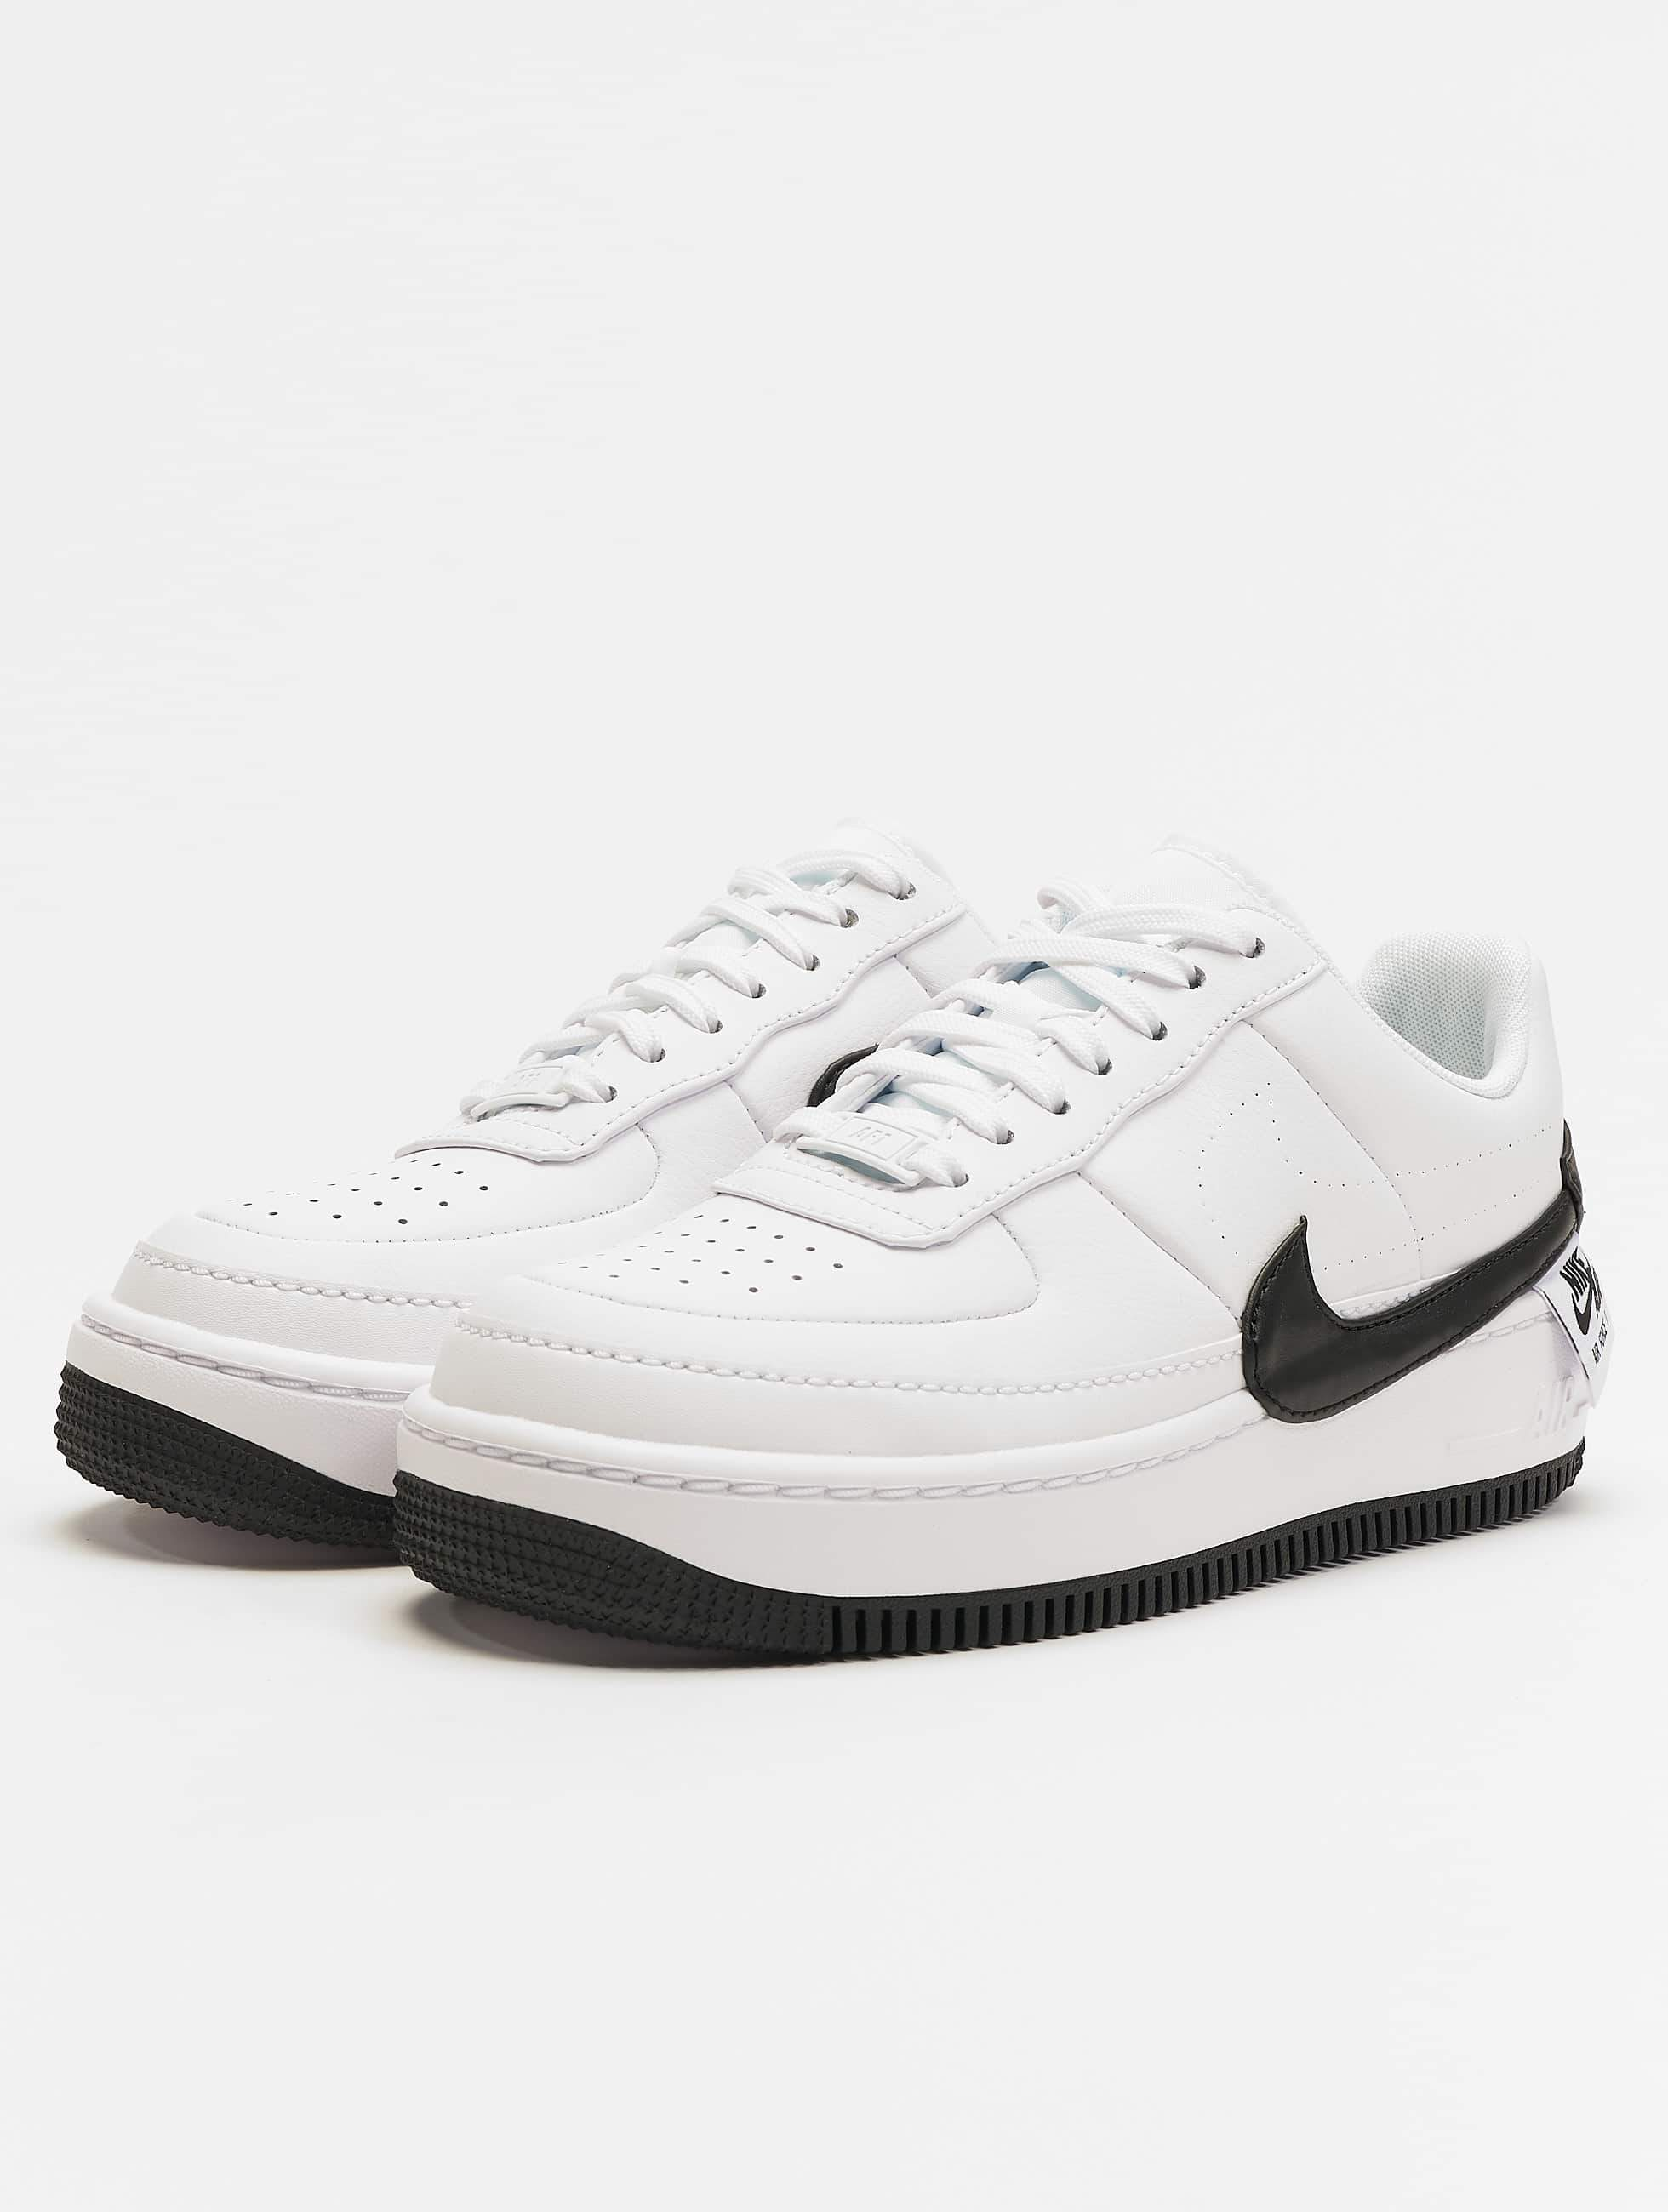 reputable site a0ec0 cbda5 Nike Damen Sneaker Air Force 1 Jester Xx in weiß 539263